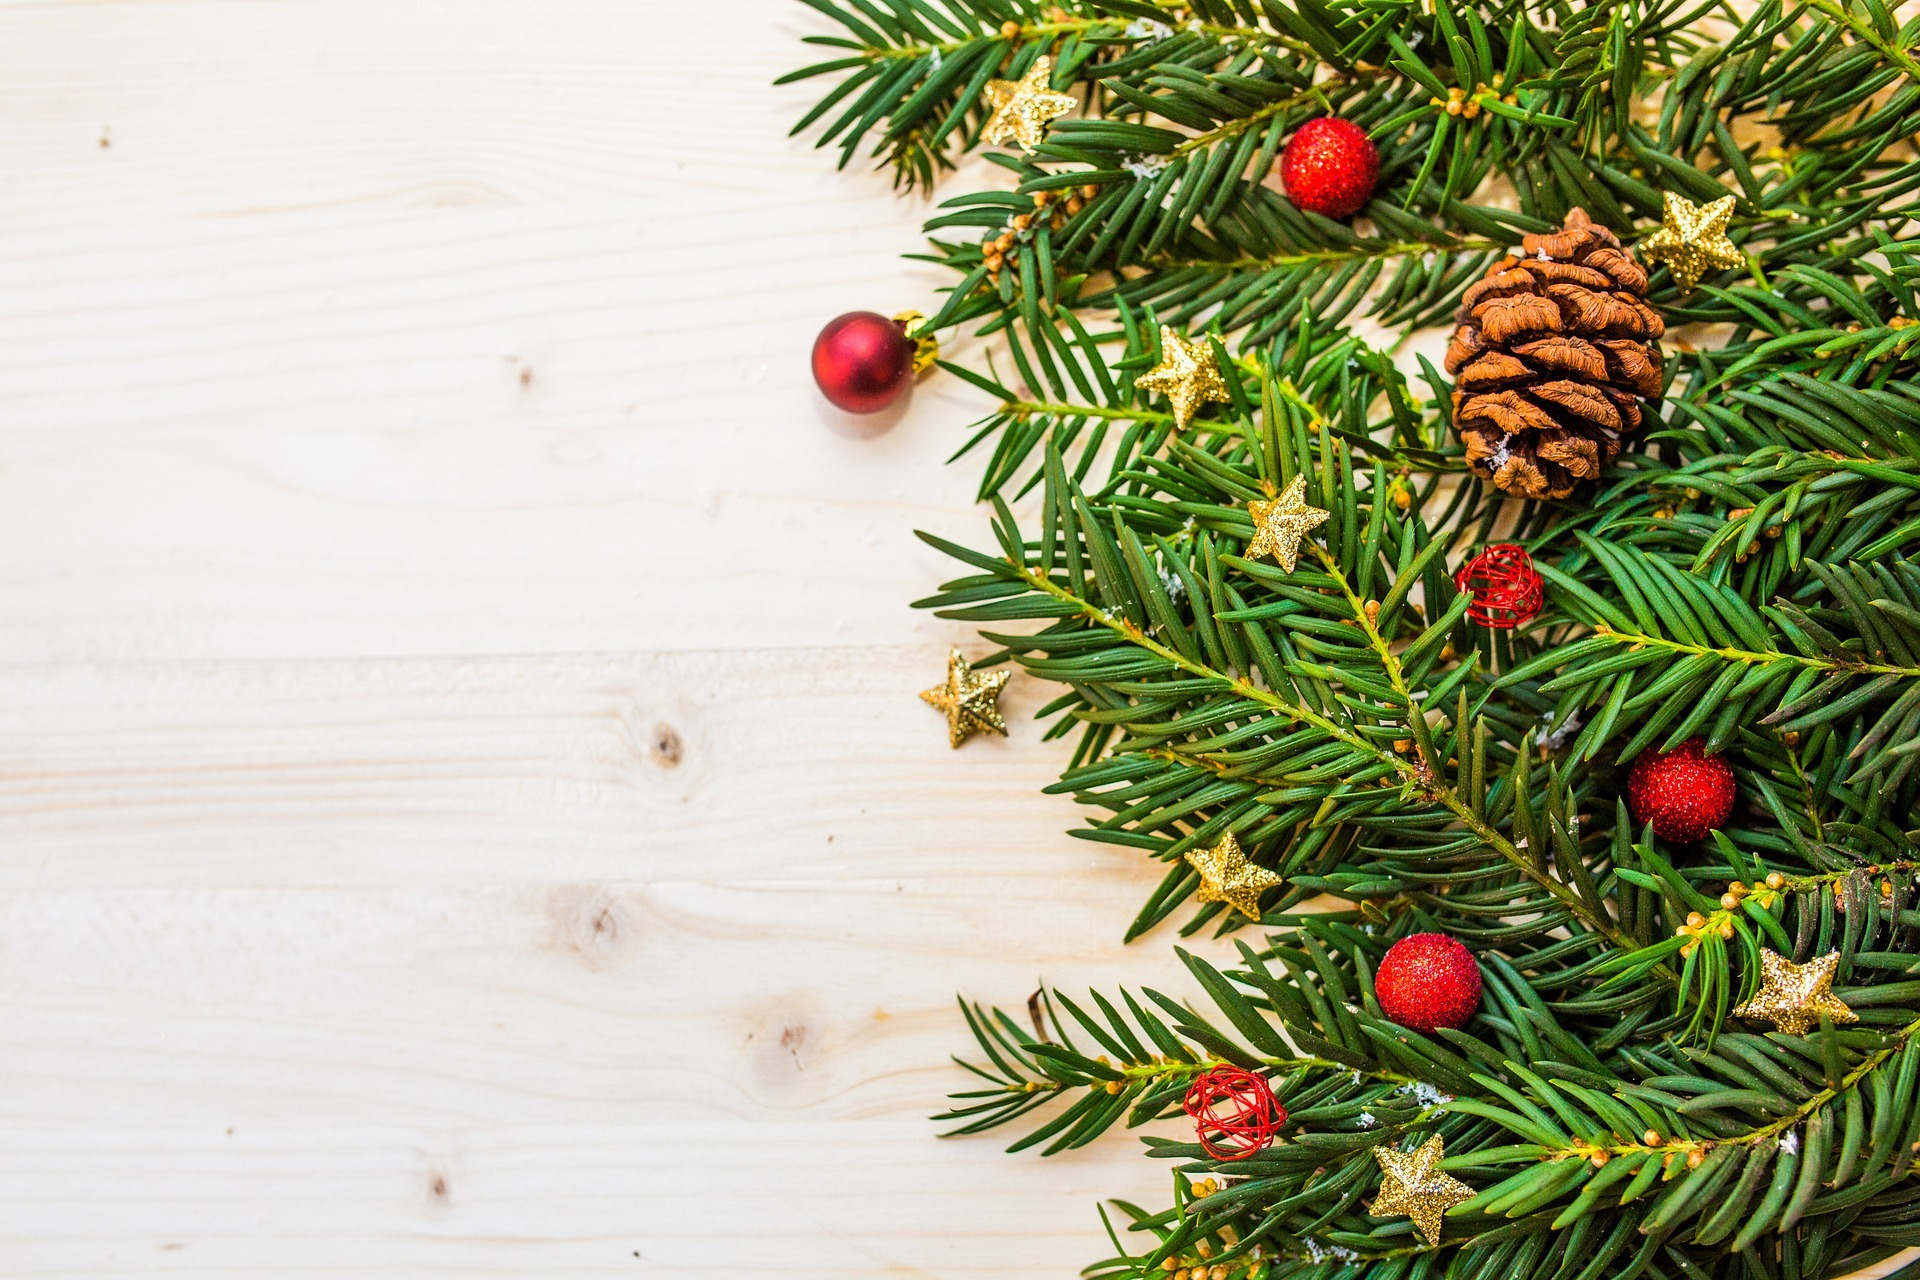 A stock image of a Christmas tree